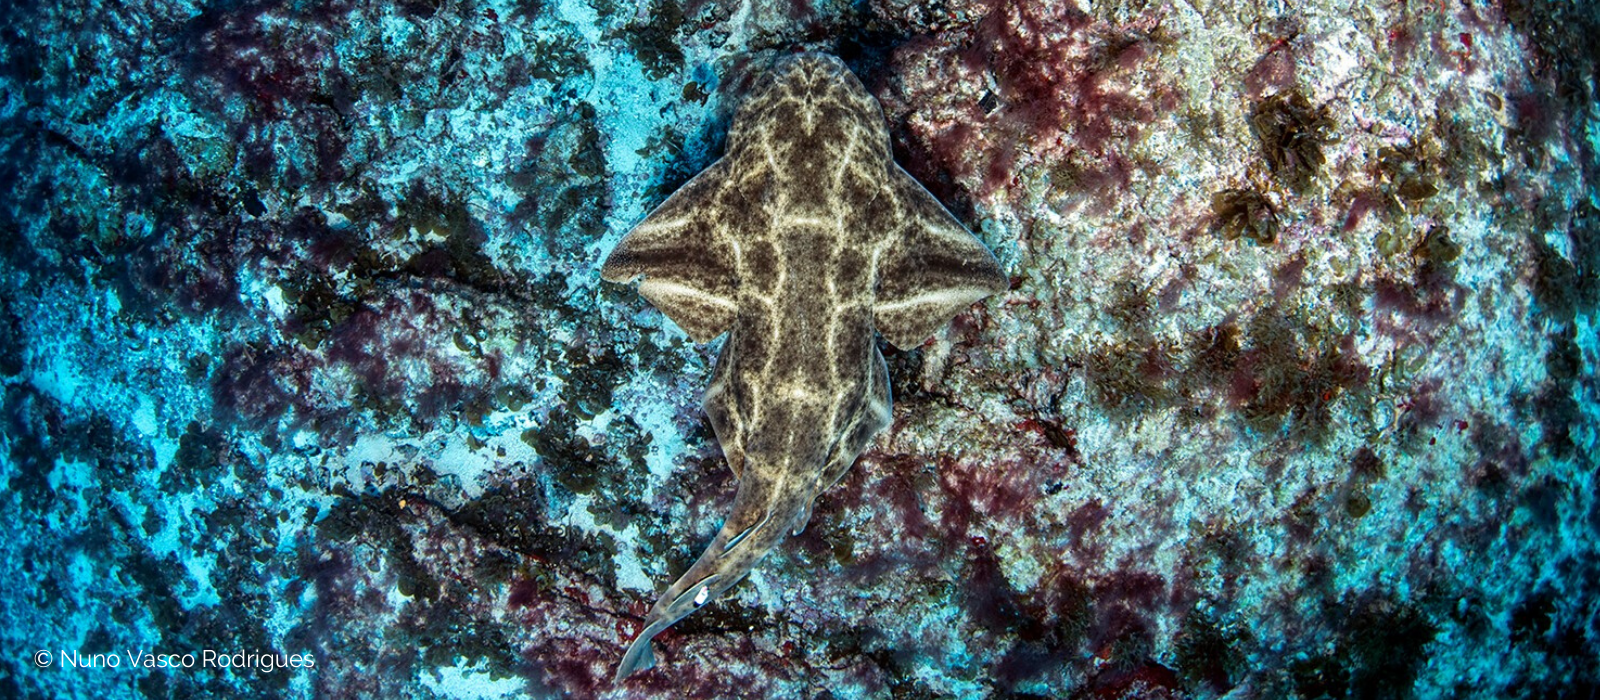 Angel shark © Nuno Vasco Rodrigues